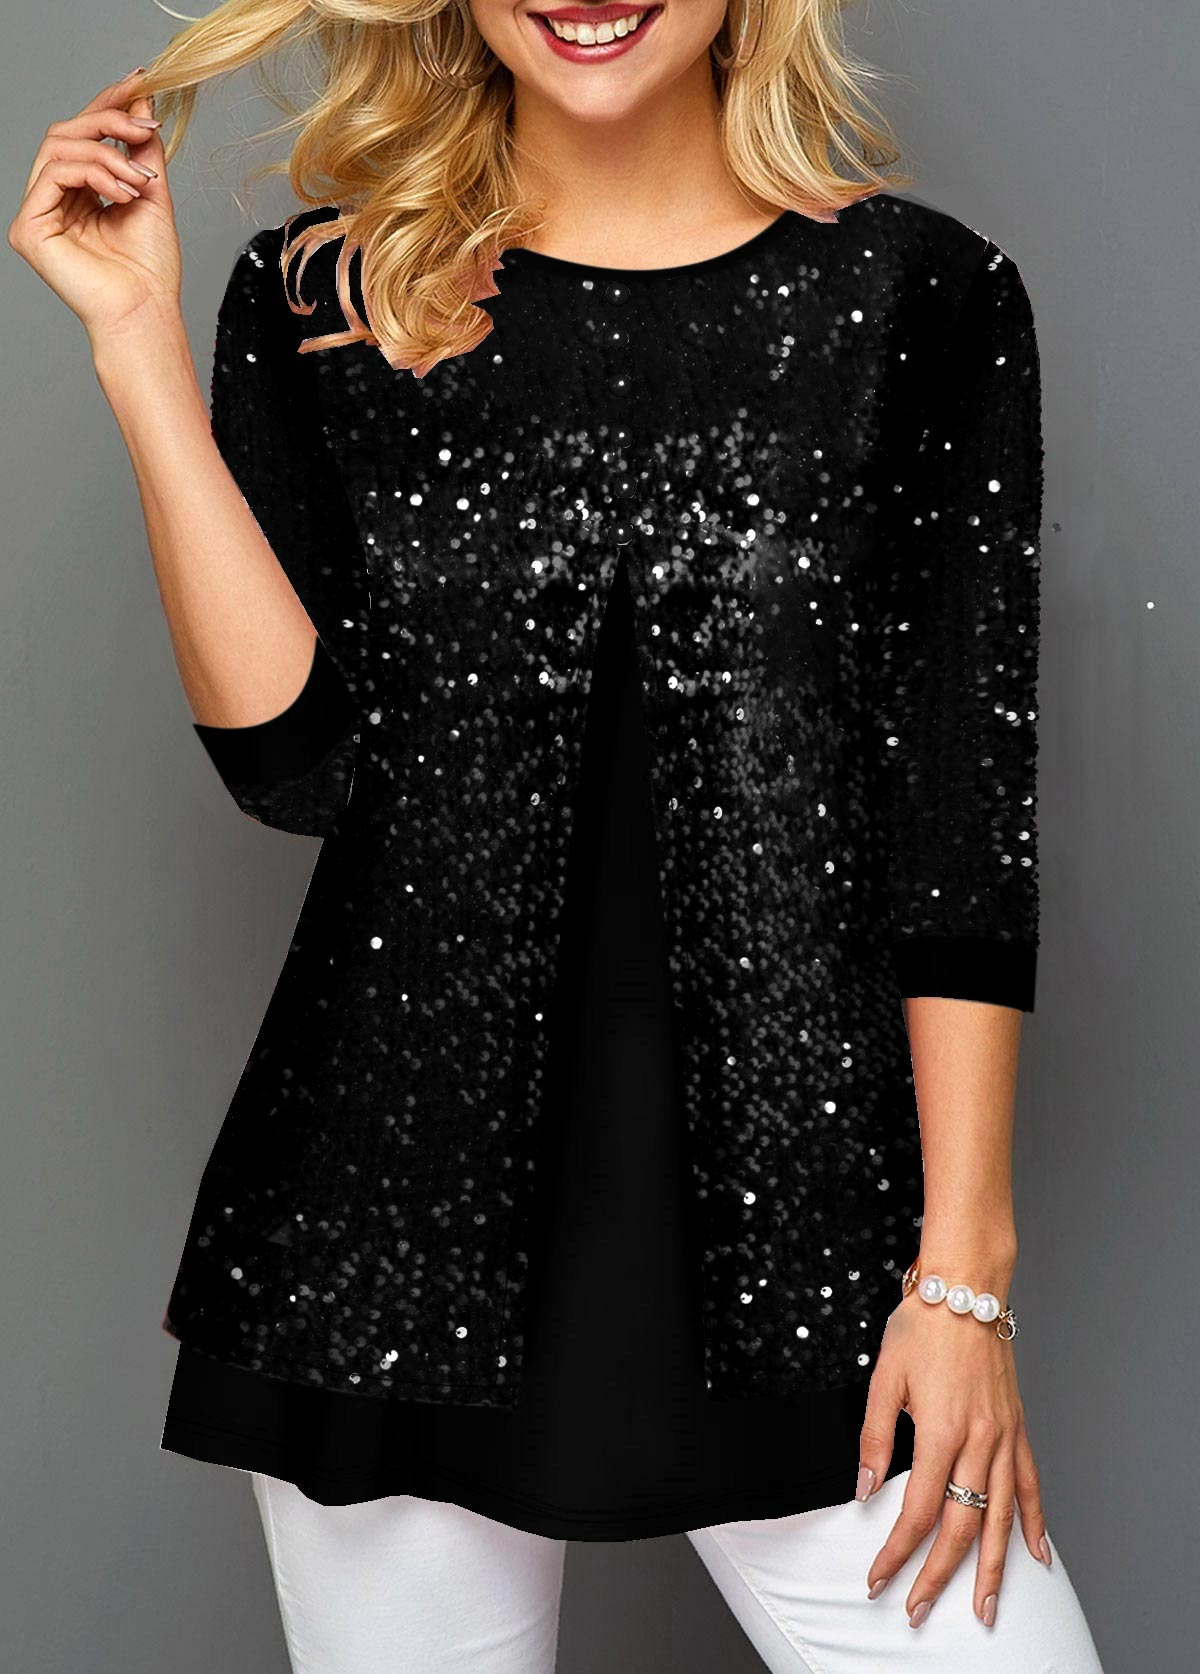 Sequin Detail Black Faux Two Piece T Shirt